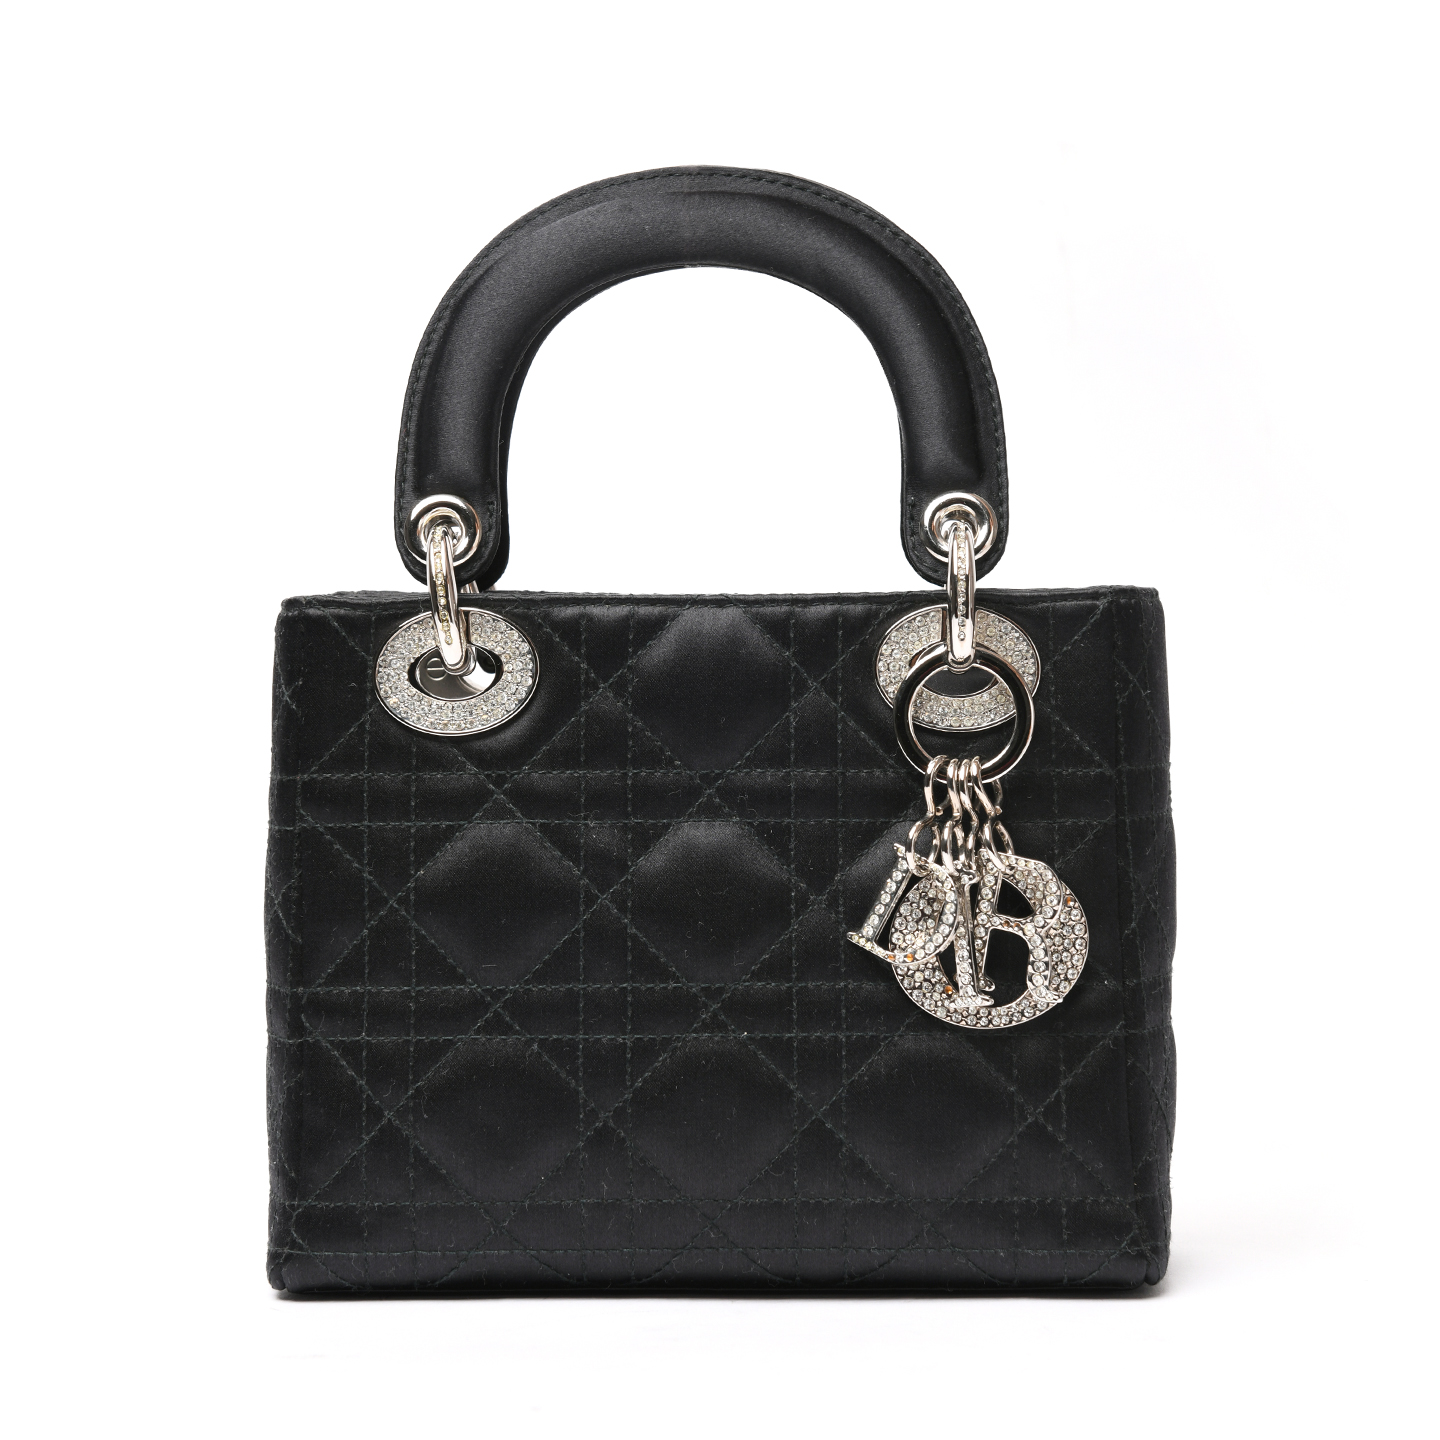 026c47182 Mini Lady Dior Bag In Black Cannage Satin With Rhinestones Price ...